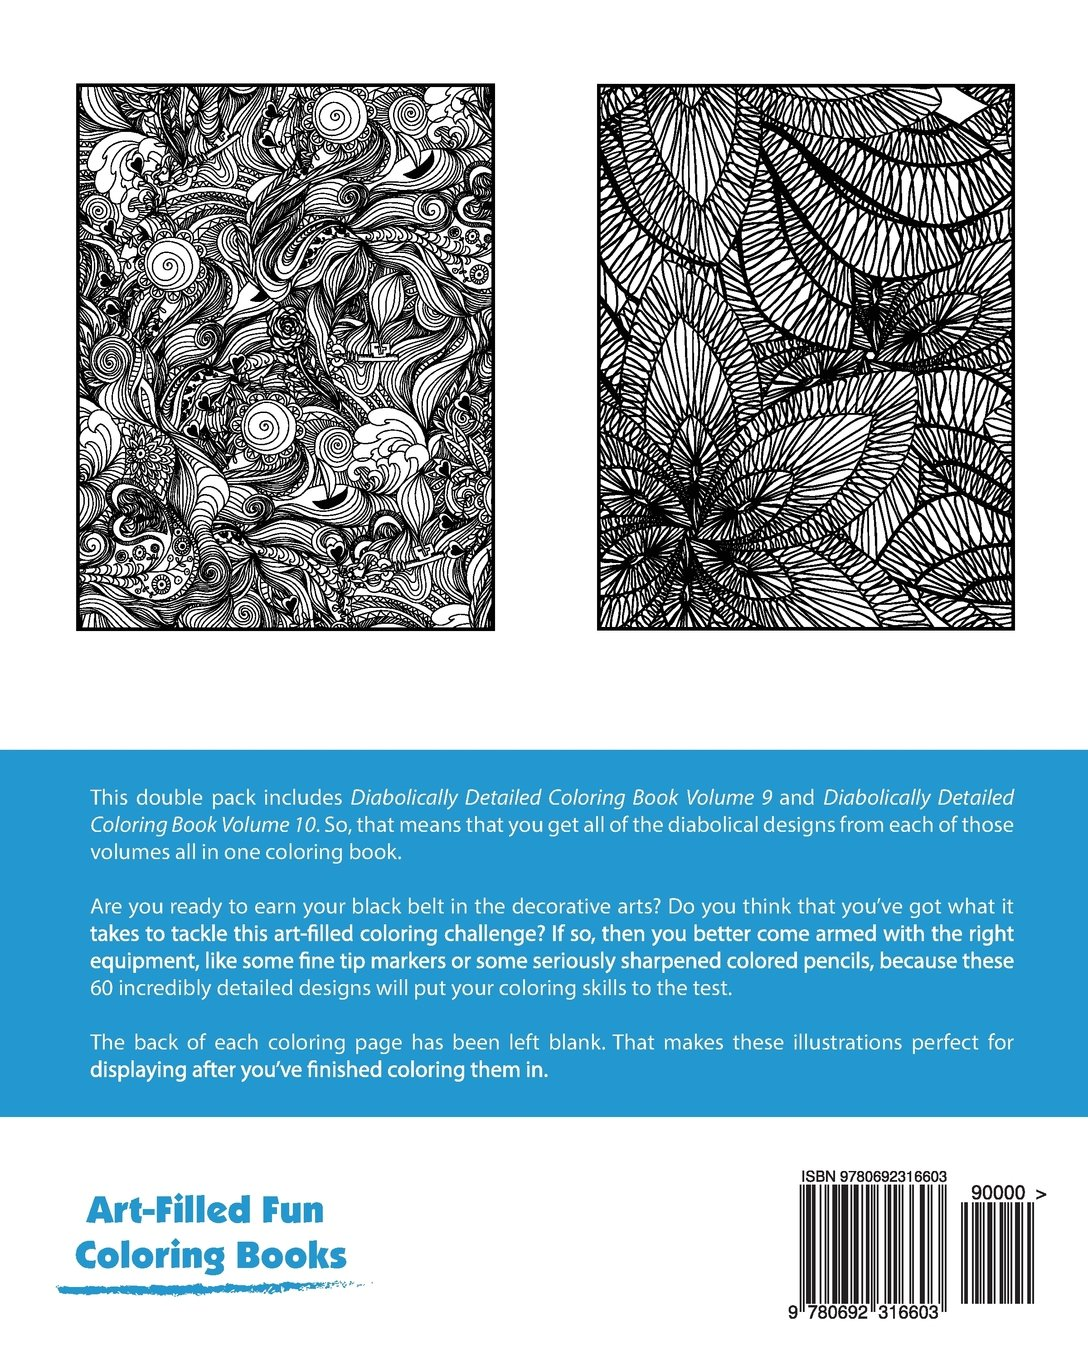 Diabolically Detailed Coloring Book Double Pack (Volumes 9 & 10 ...